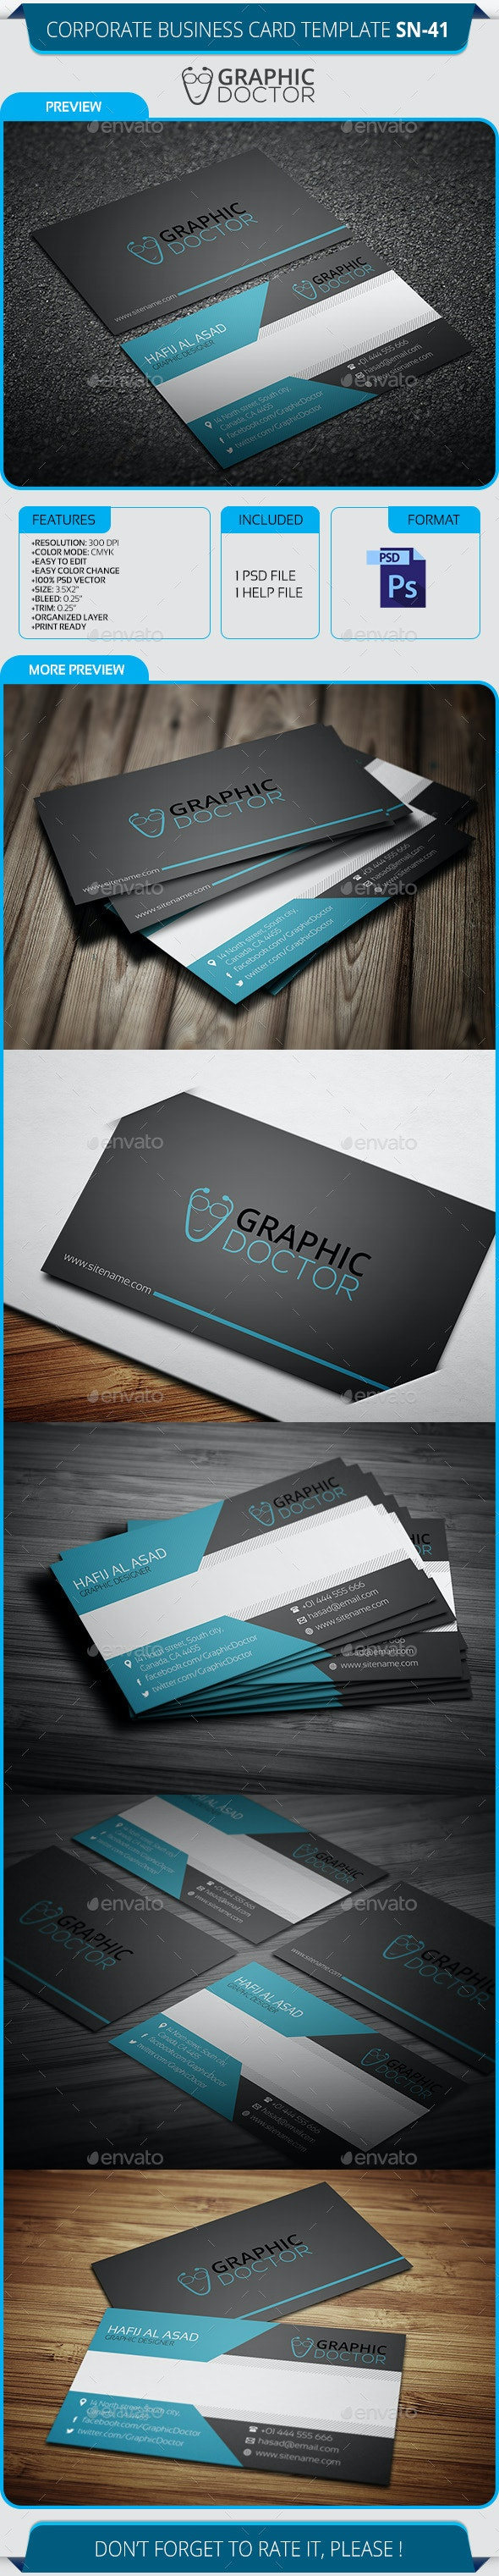 Corporate Business Card Template SN-41 - Corporate Business Cards